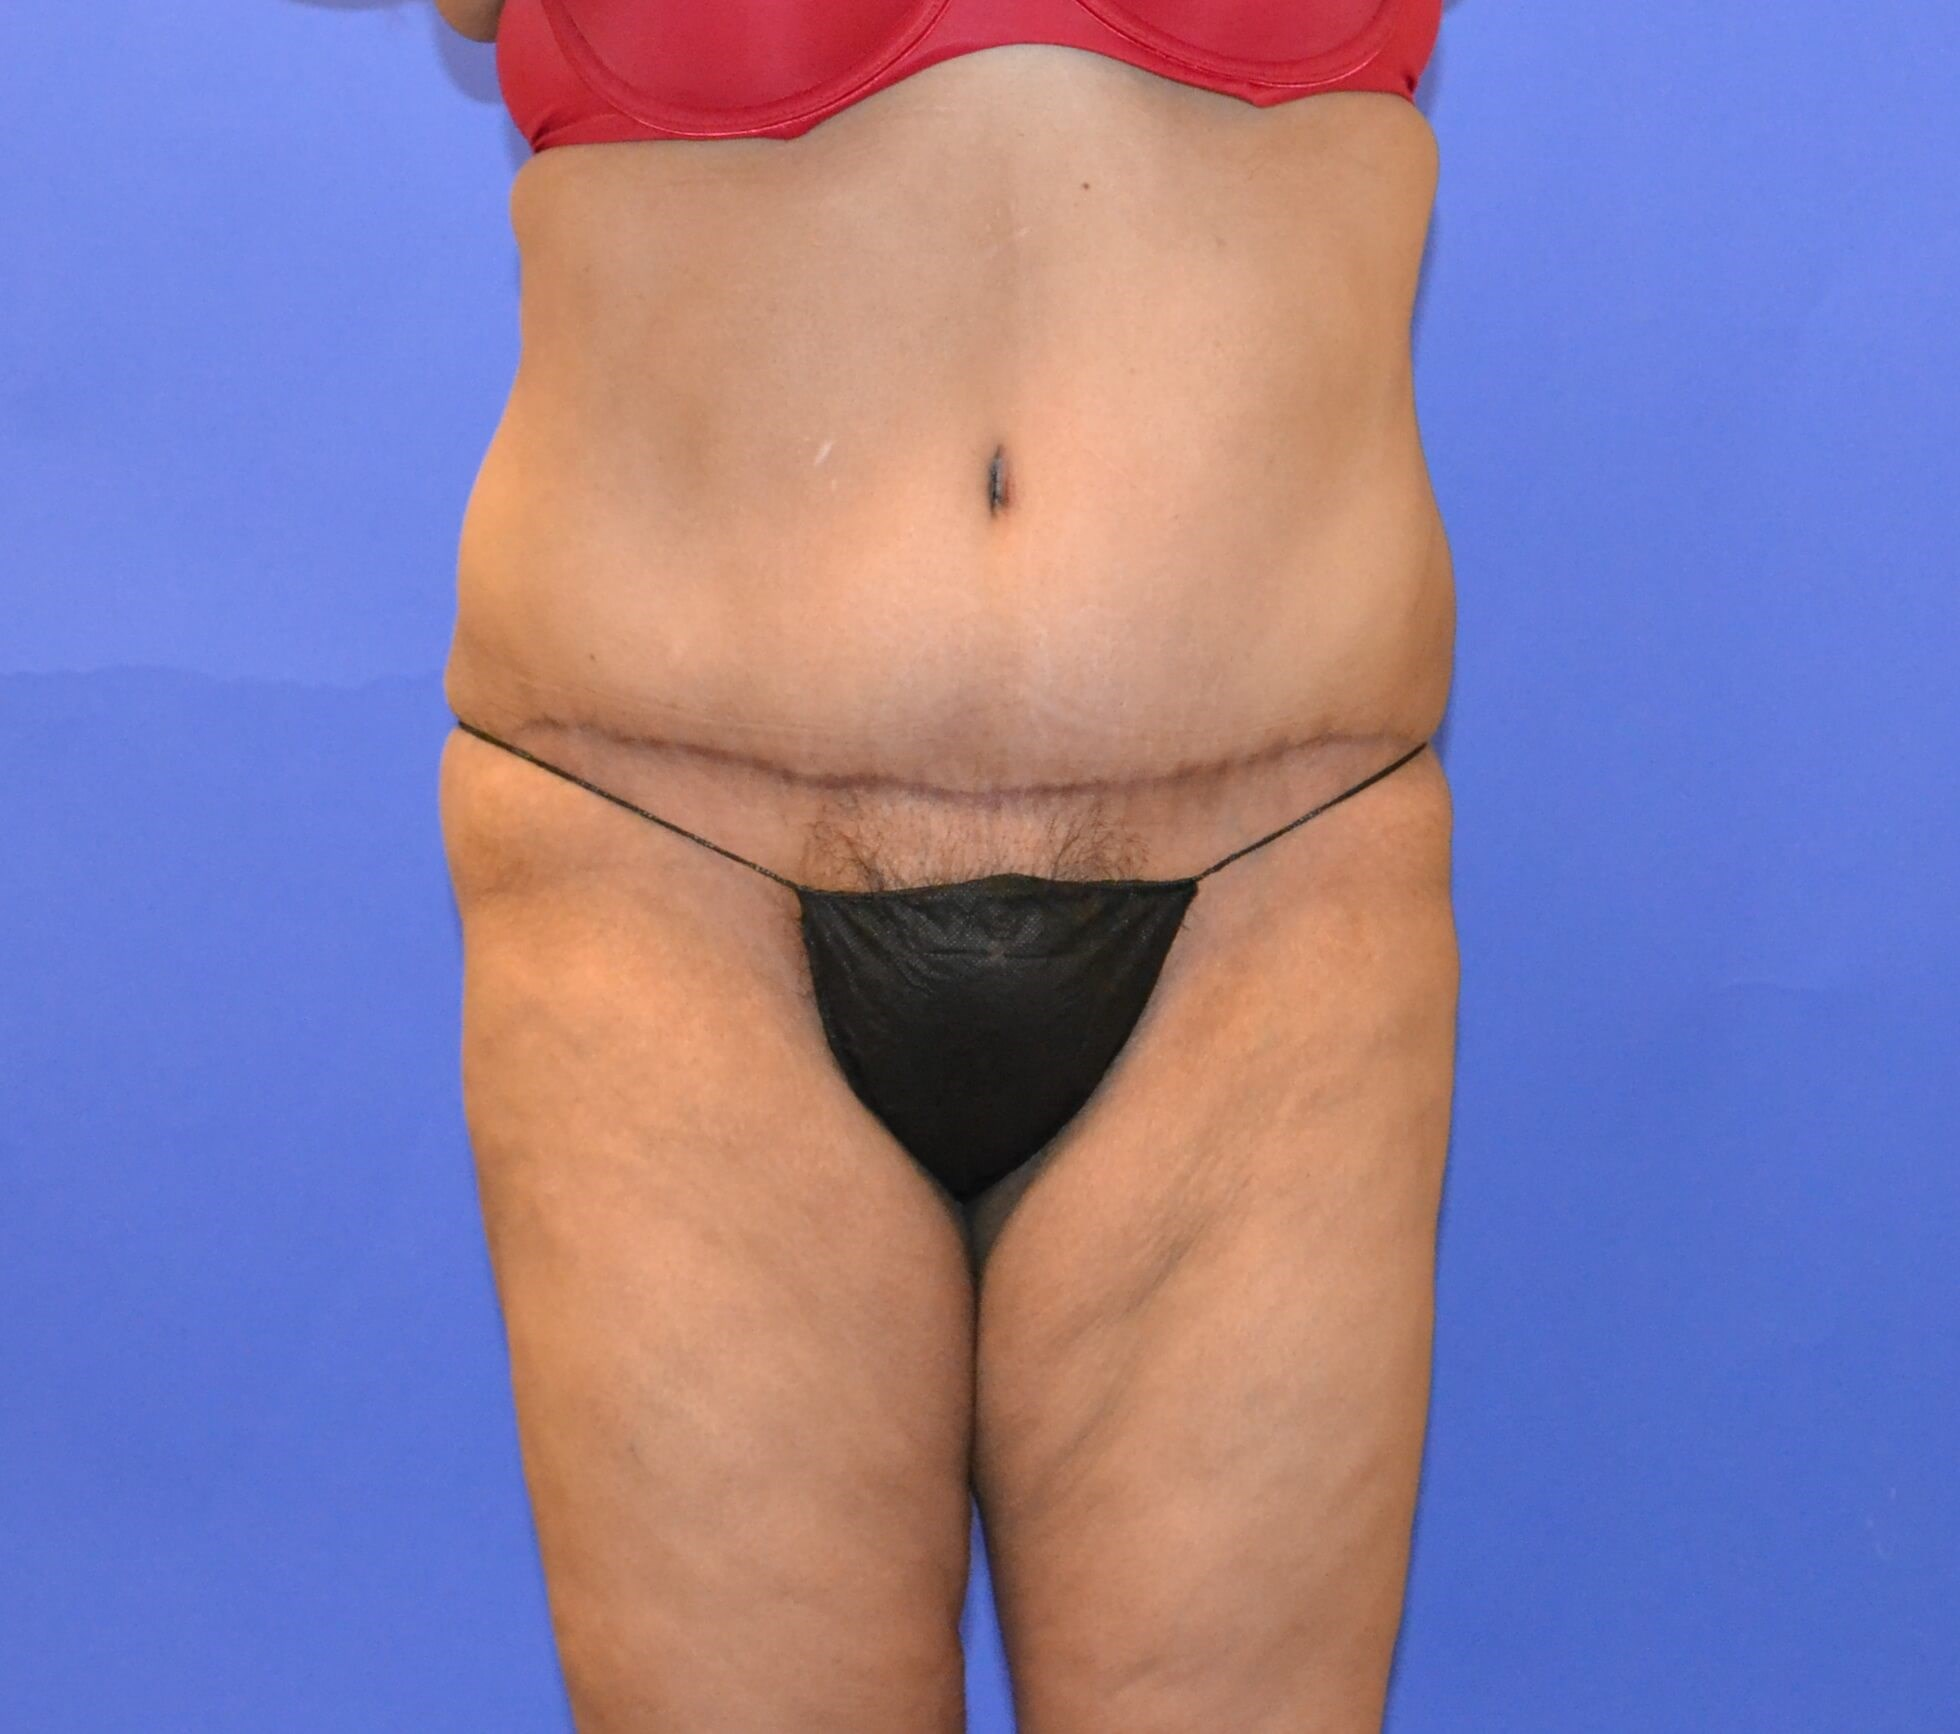 Tummy Tuck - Front view After